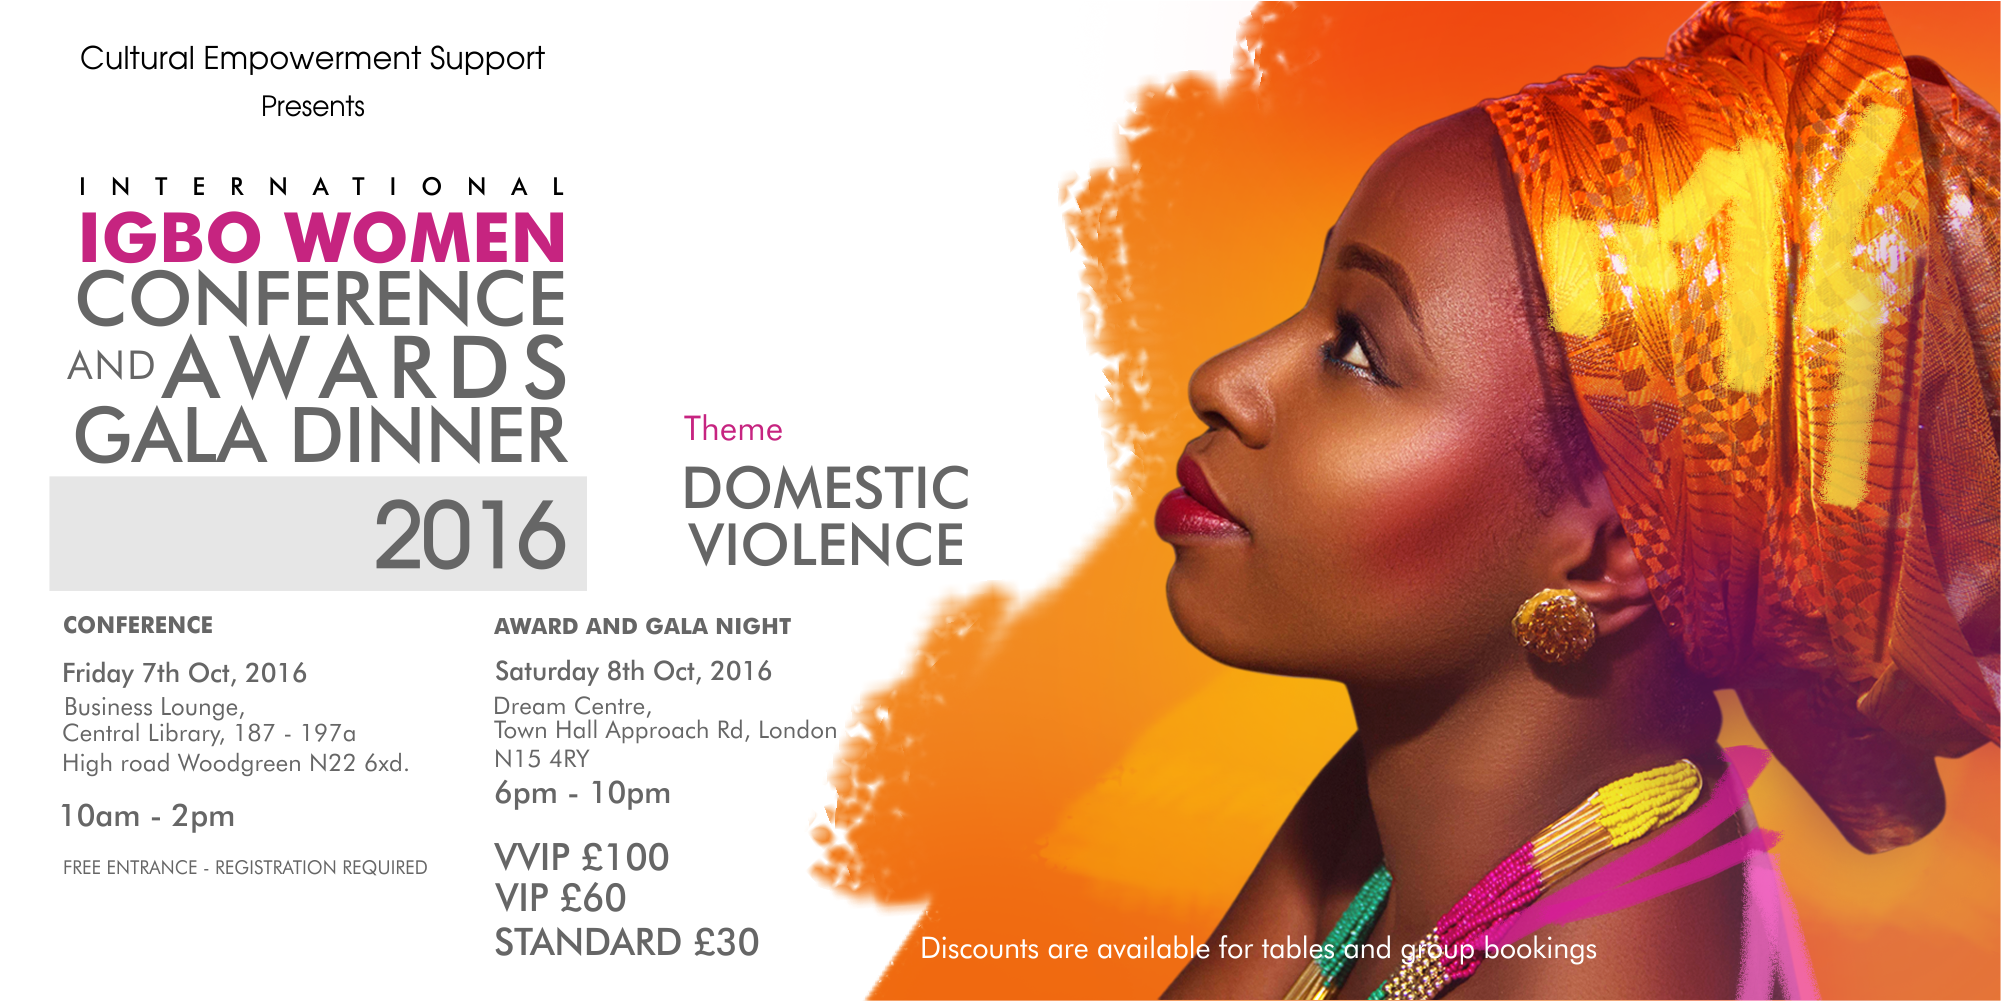 International Igbo Women Conference and Awards Gala Dinner